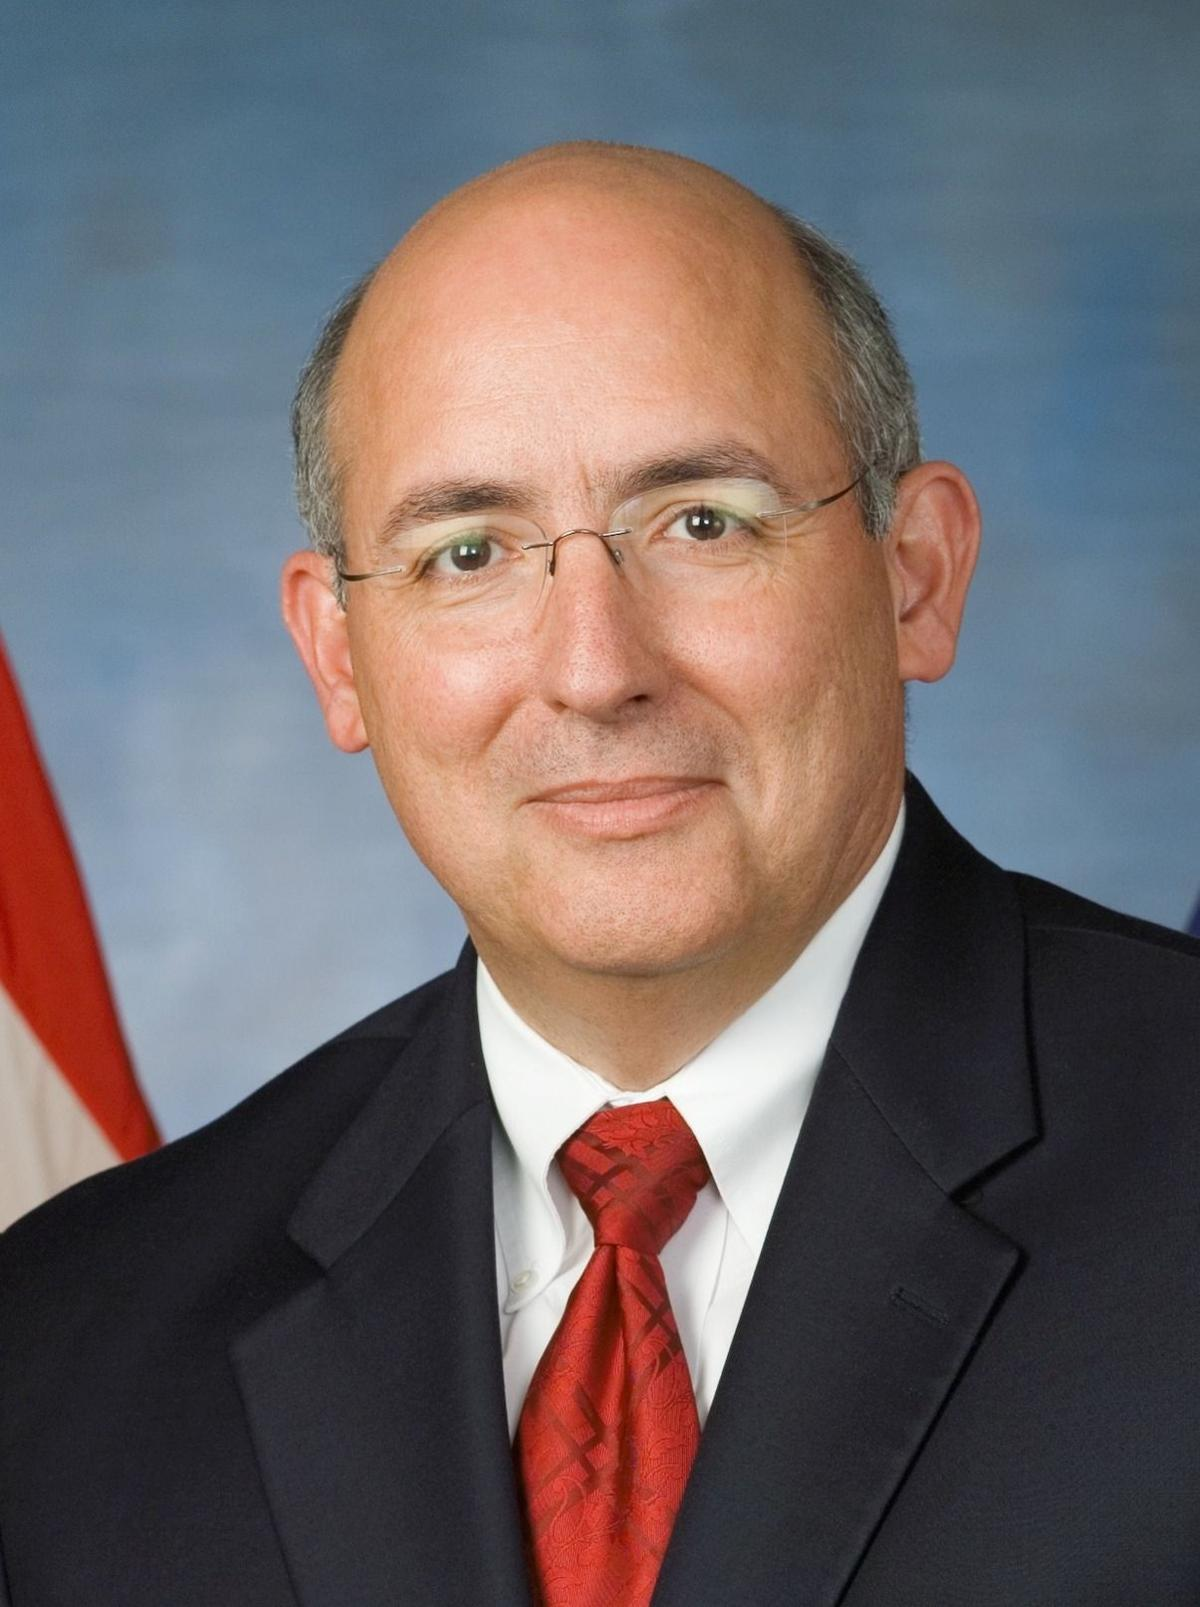 Michael Suffredini